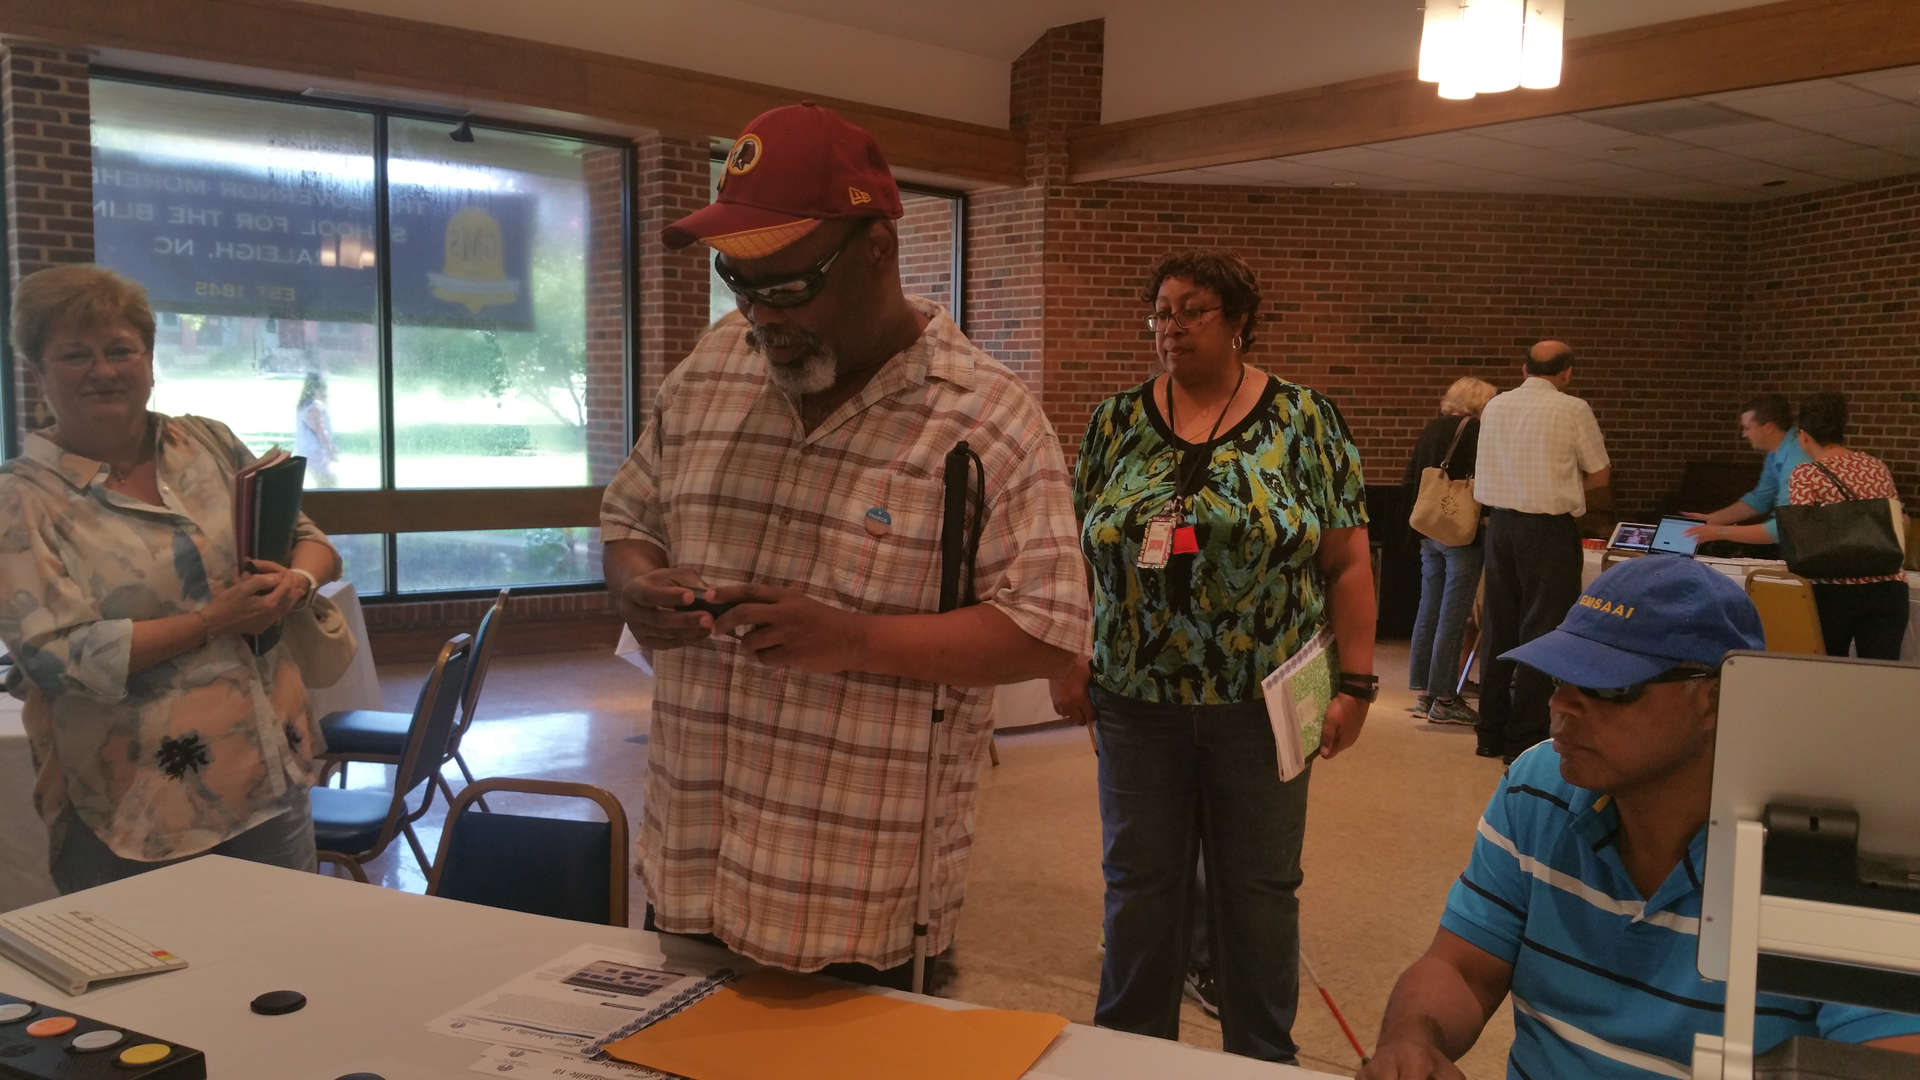 Participants try out resources located at different stations around the room.